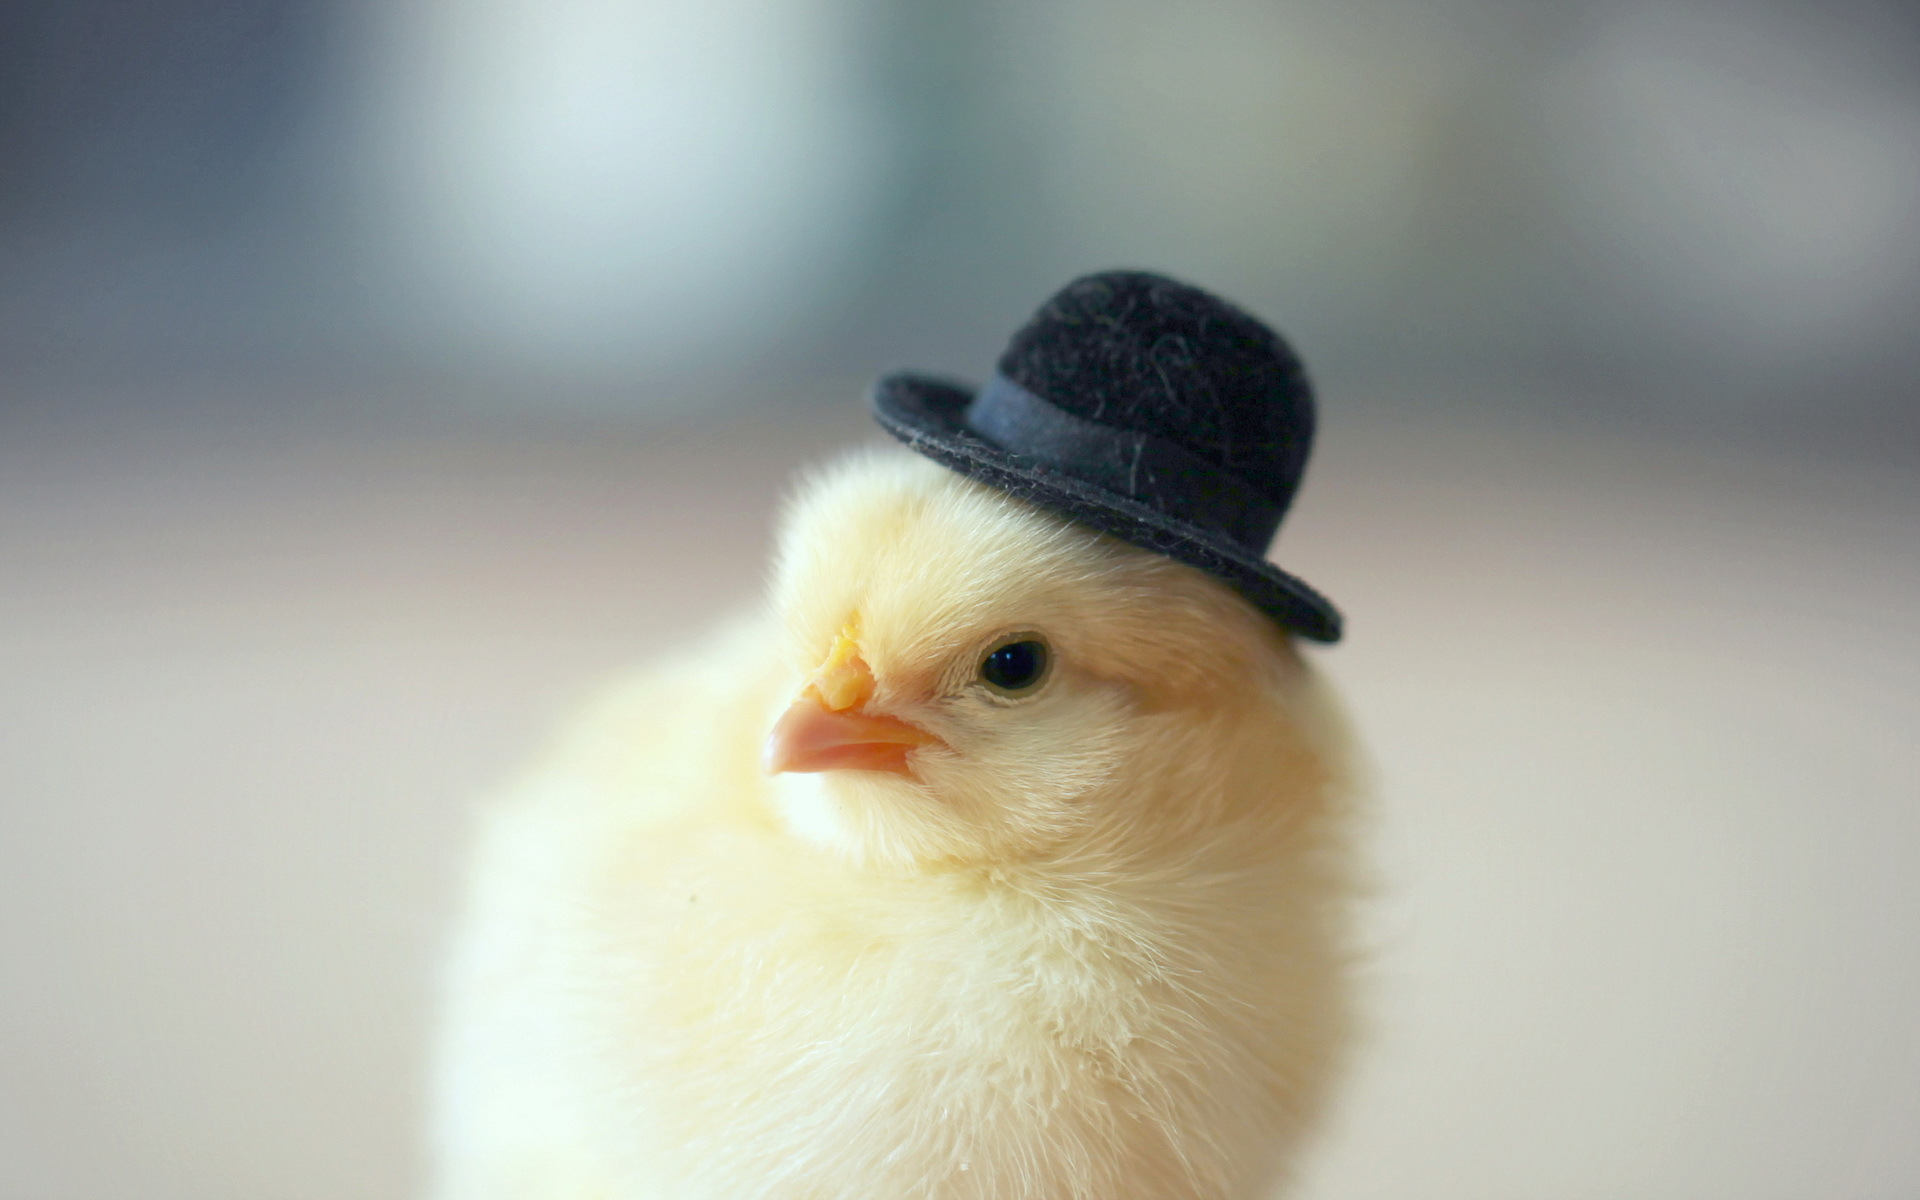 Cute Baby Animal Pictures Wallpapers Chicken Hd Wallpapers Amp Pictures Hd Wallpapers